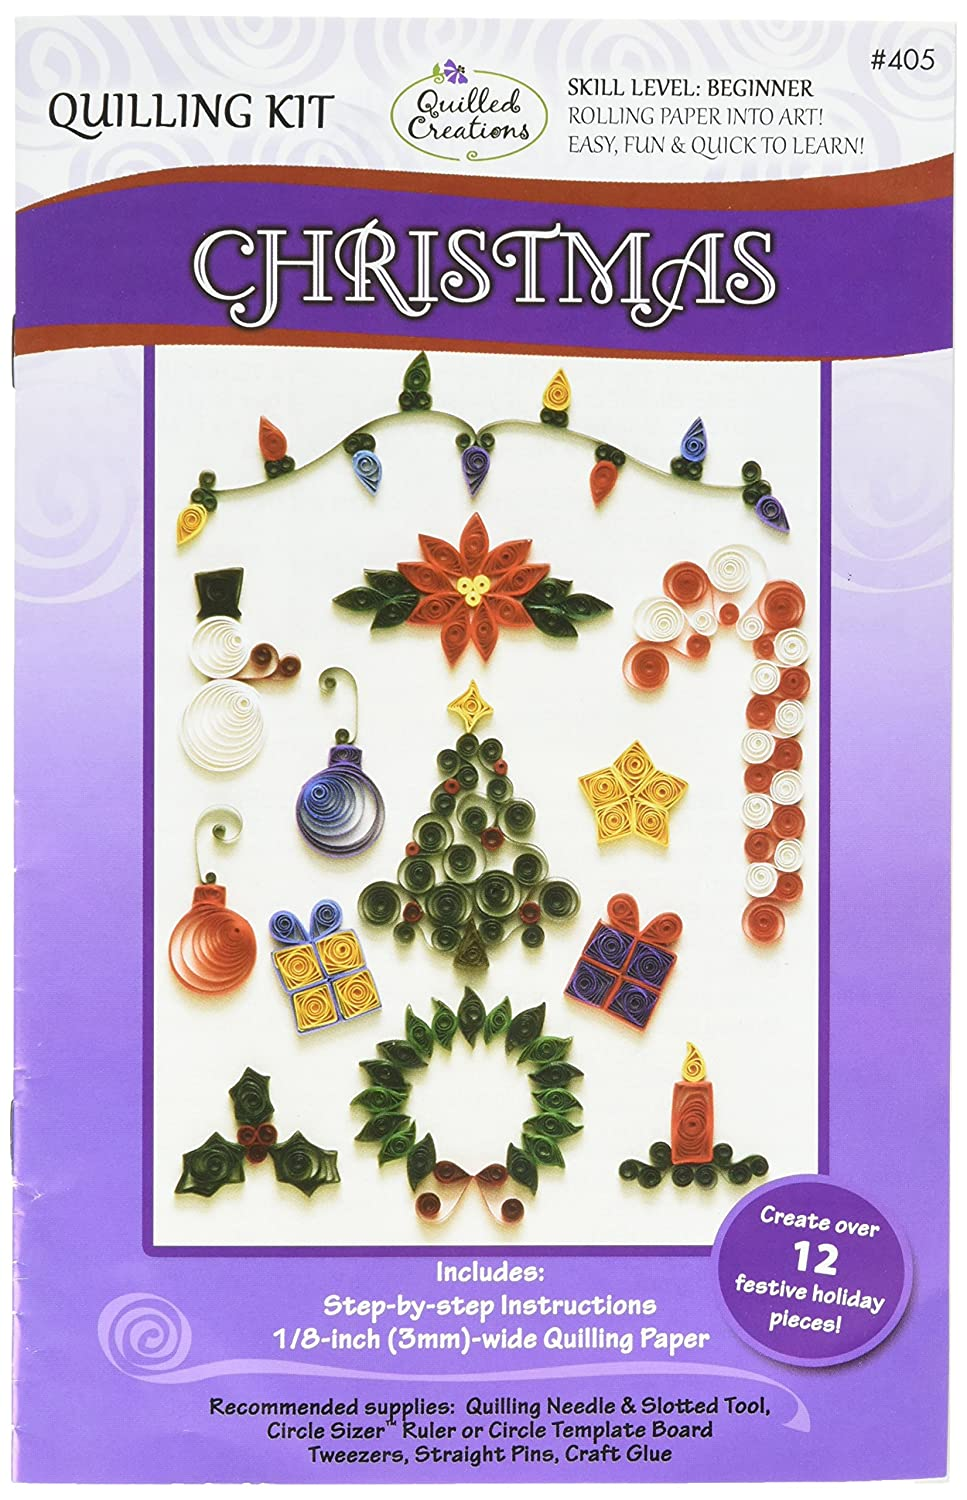 Quilled Creations Q40-5 Quilling Strips Christmas Kit